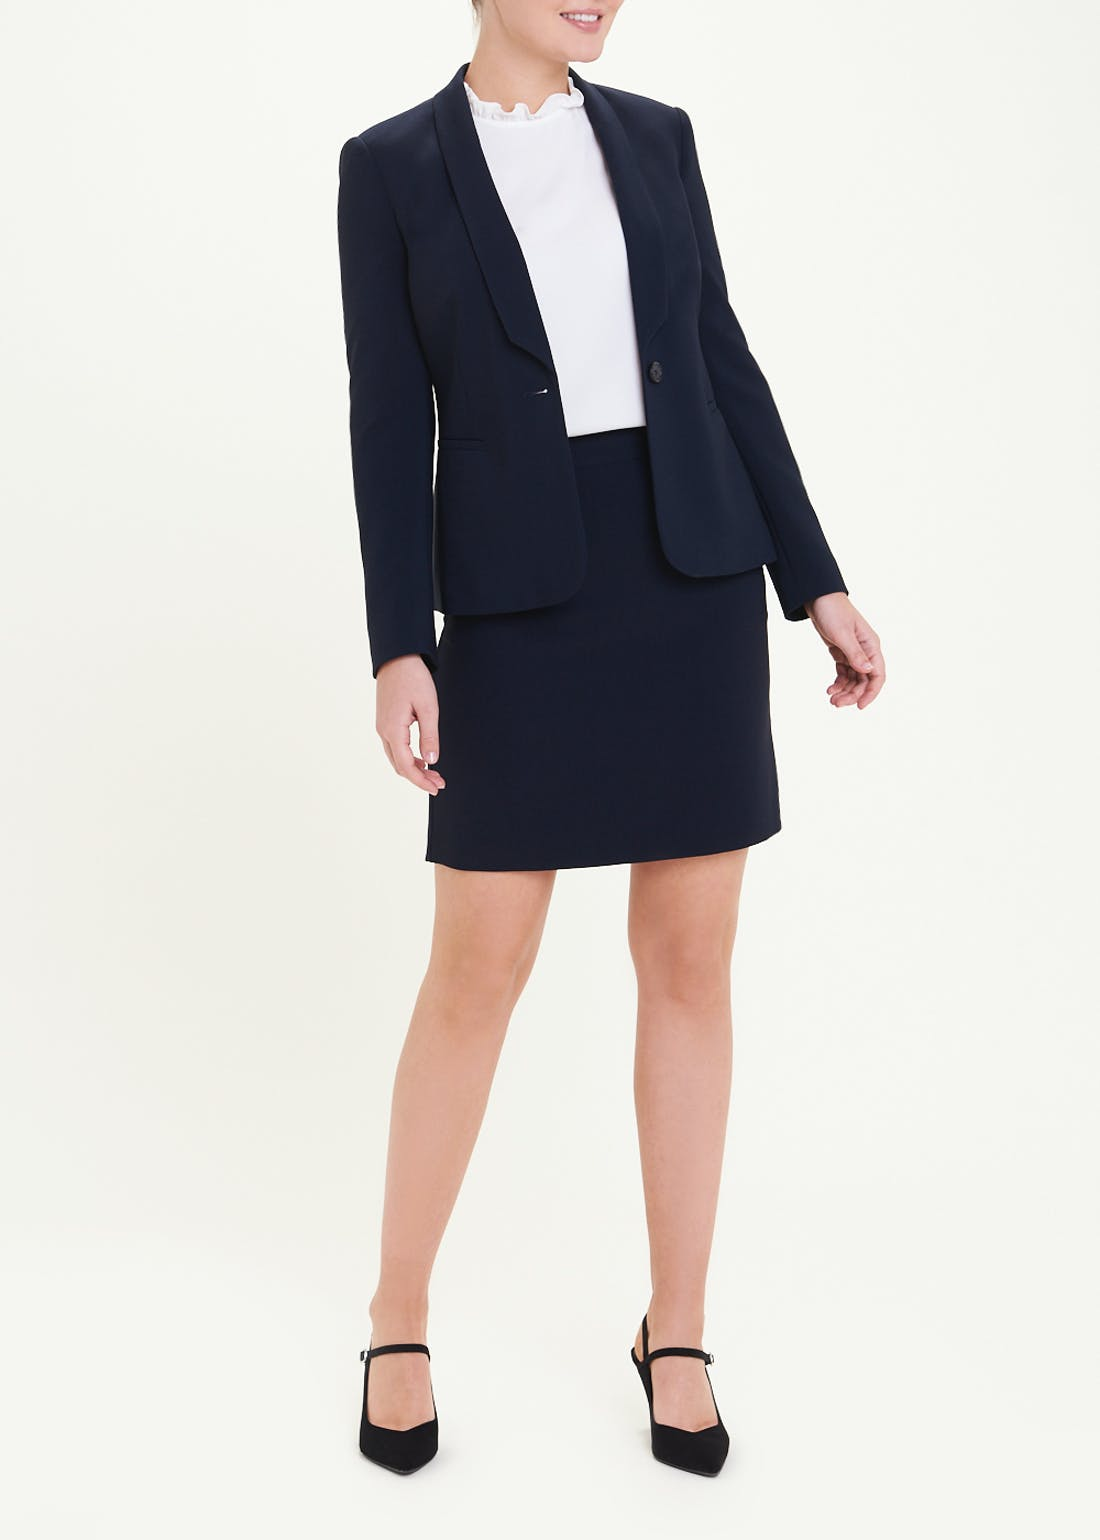 Essential A-Line Suit Skirt